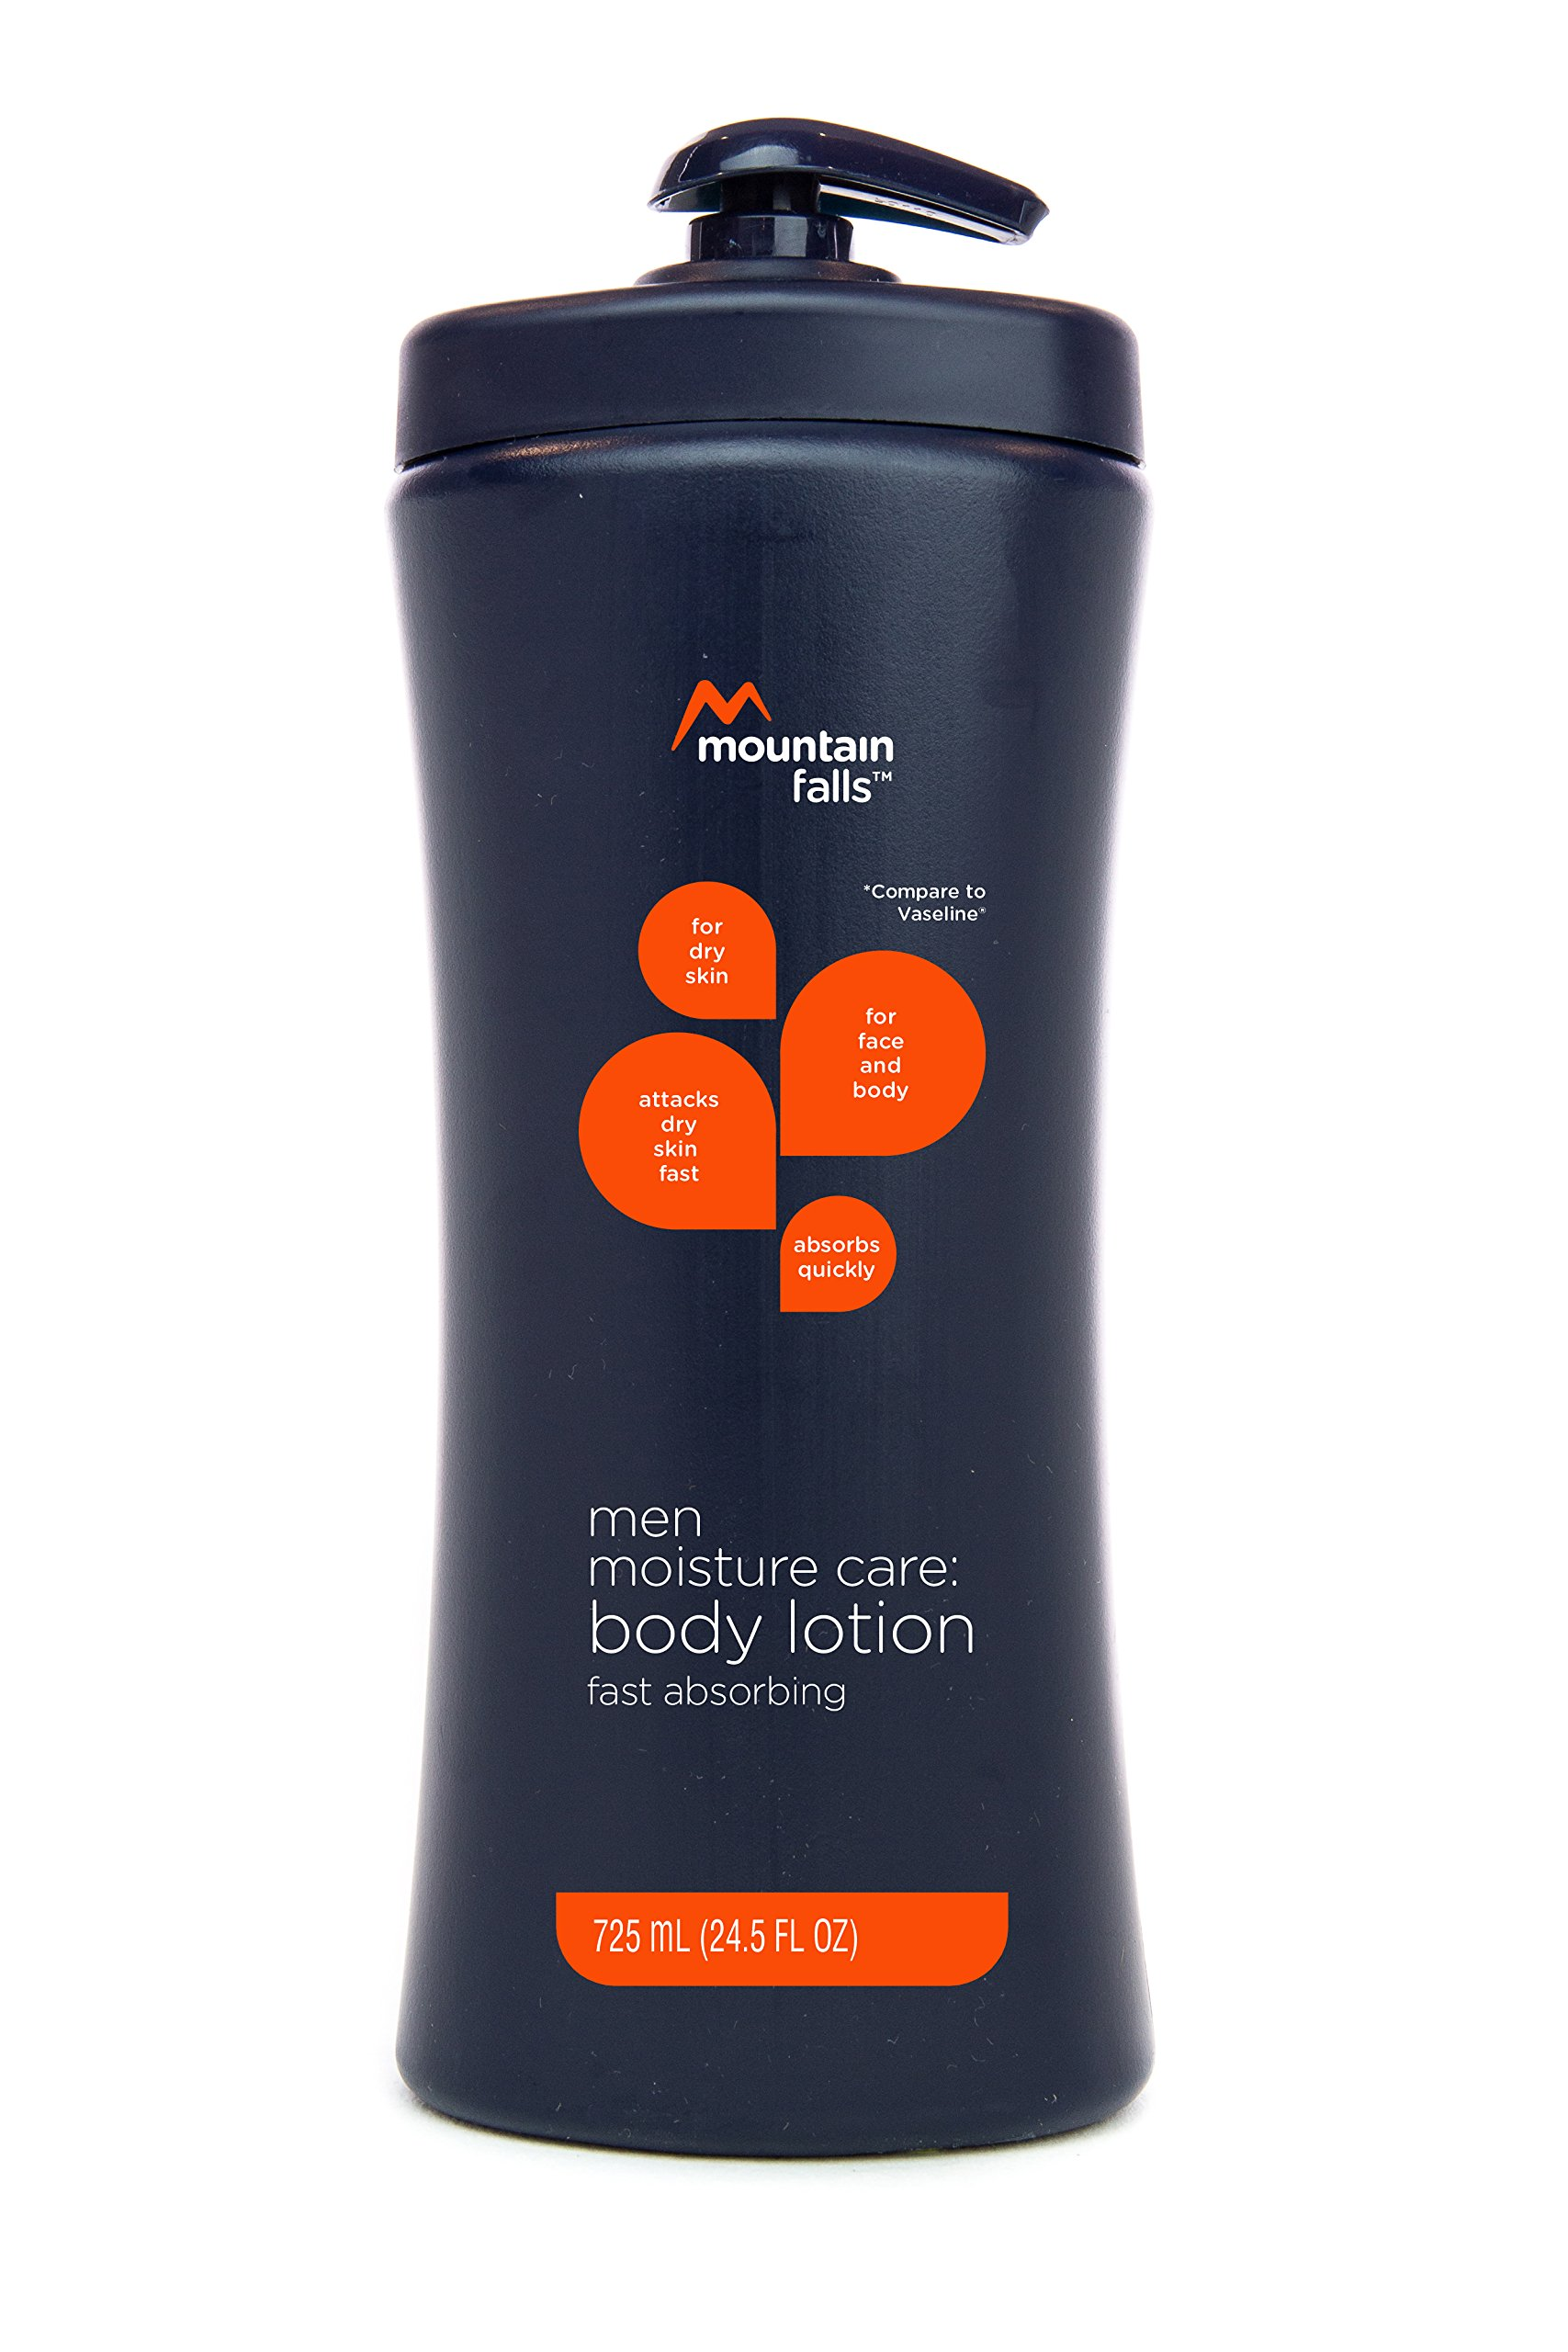 Mountain Falls Moisture Care: Men's Body Lotion, Fast Absorbing, Pump Bottle, Compare to Vaseline, 24.5 Fluid Ounce